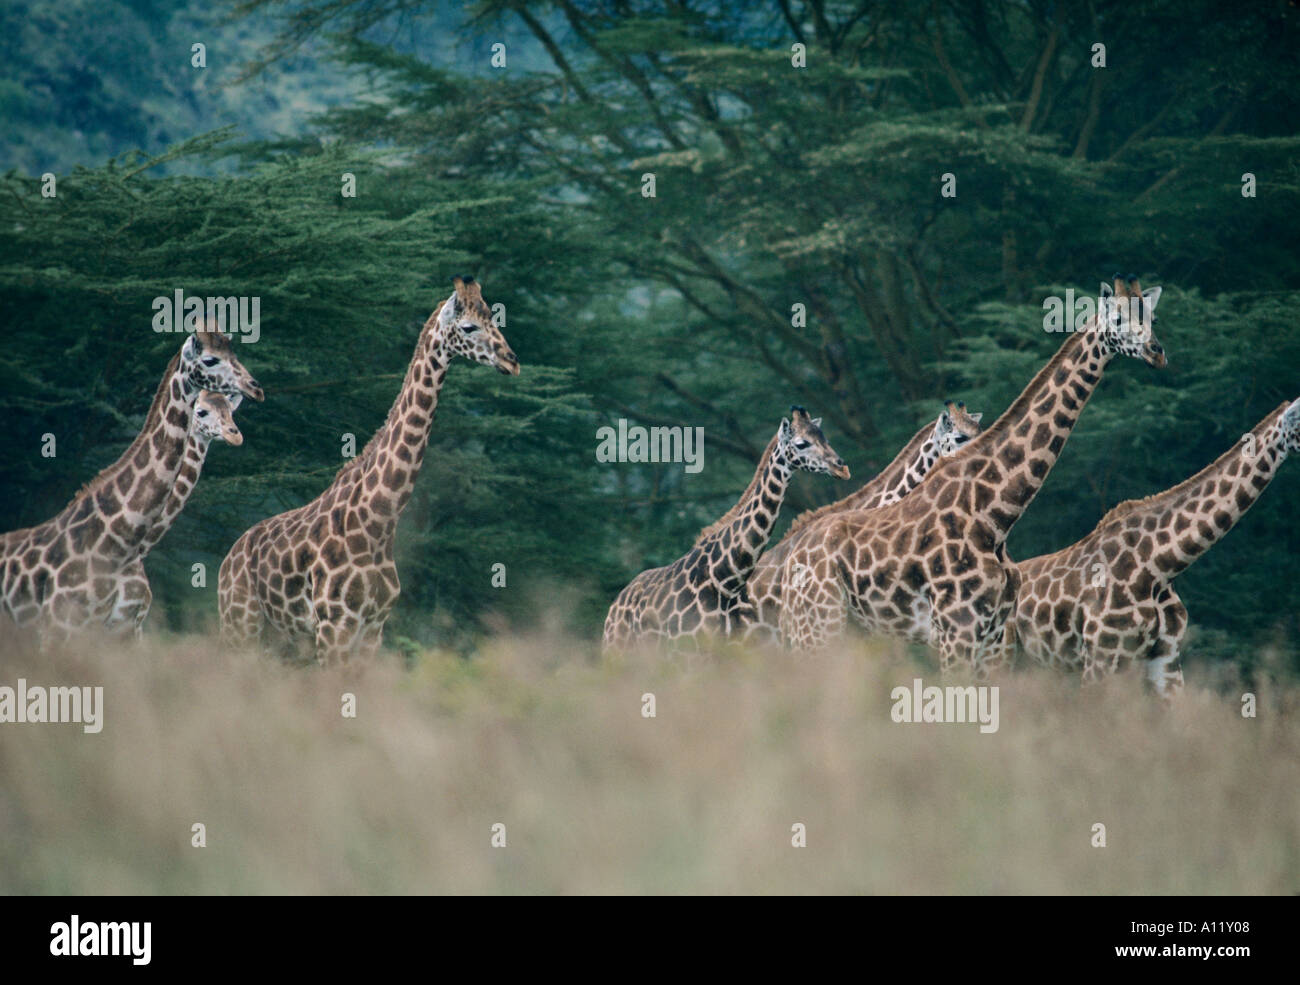 A group of Rothschild giraffe in Kenya - Stock Image